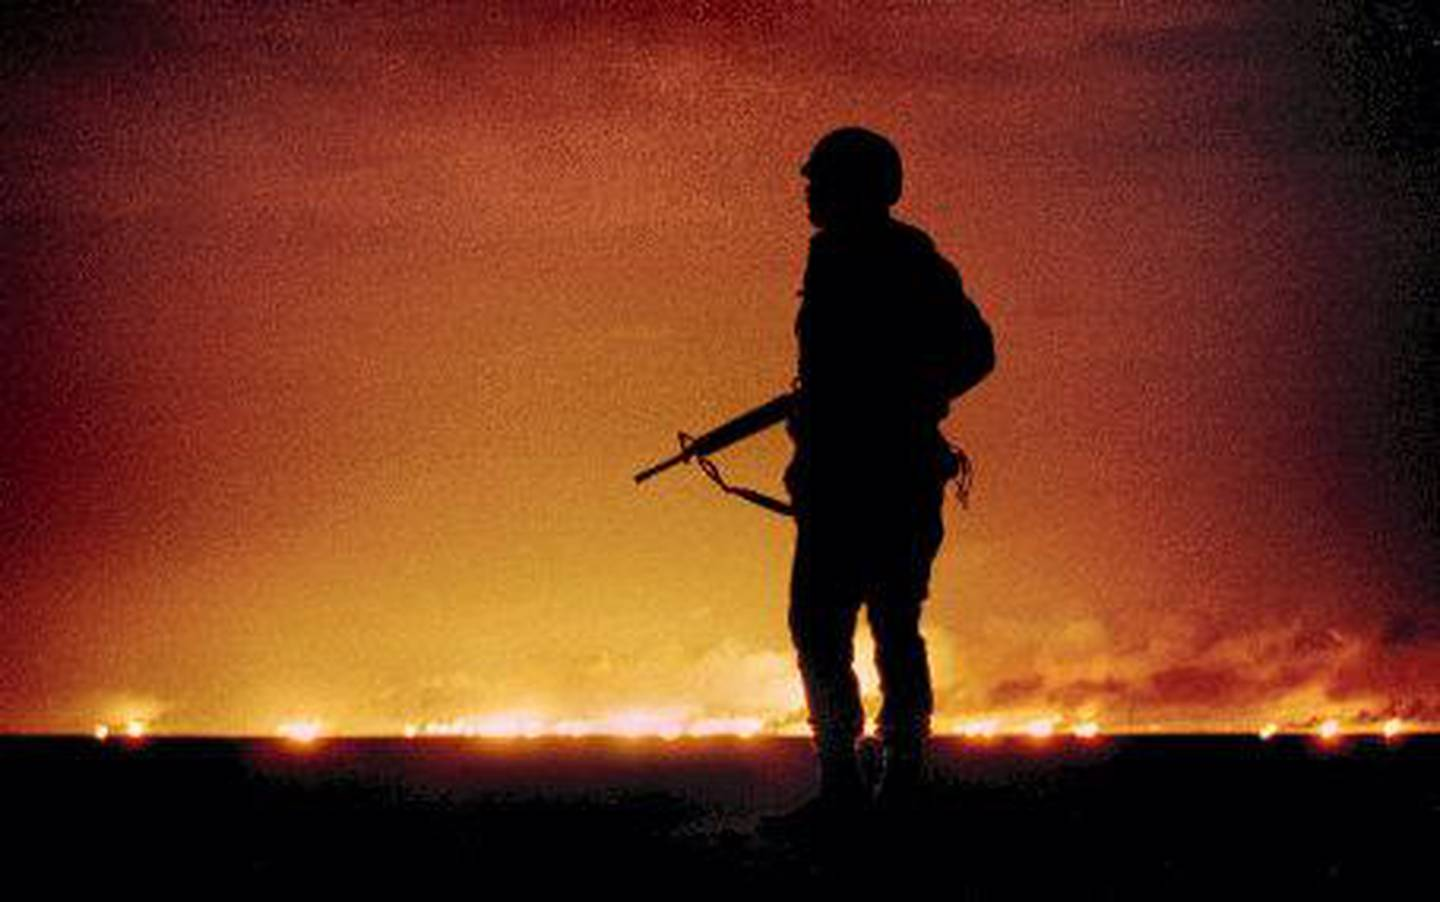 - FILE PHOTO 26FEB91 - A file photo dated February 26, 1991 of a U.S. soldier standing night guard as oil wells burn in the distance in Kuwait, just south of the Iraqi border on the last night of the Gulf War. Hundreds of burning oil wells lit up the sky after they were sabotaged by retreating Iraqi soldiers.  January 17, 2001 is the 10th anniversary of the commencement of the coalition's Desert Storm air and bombing campaign to free Kuwait from Iraqi occupation.